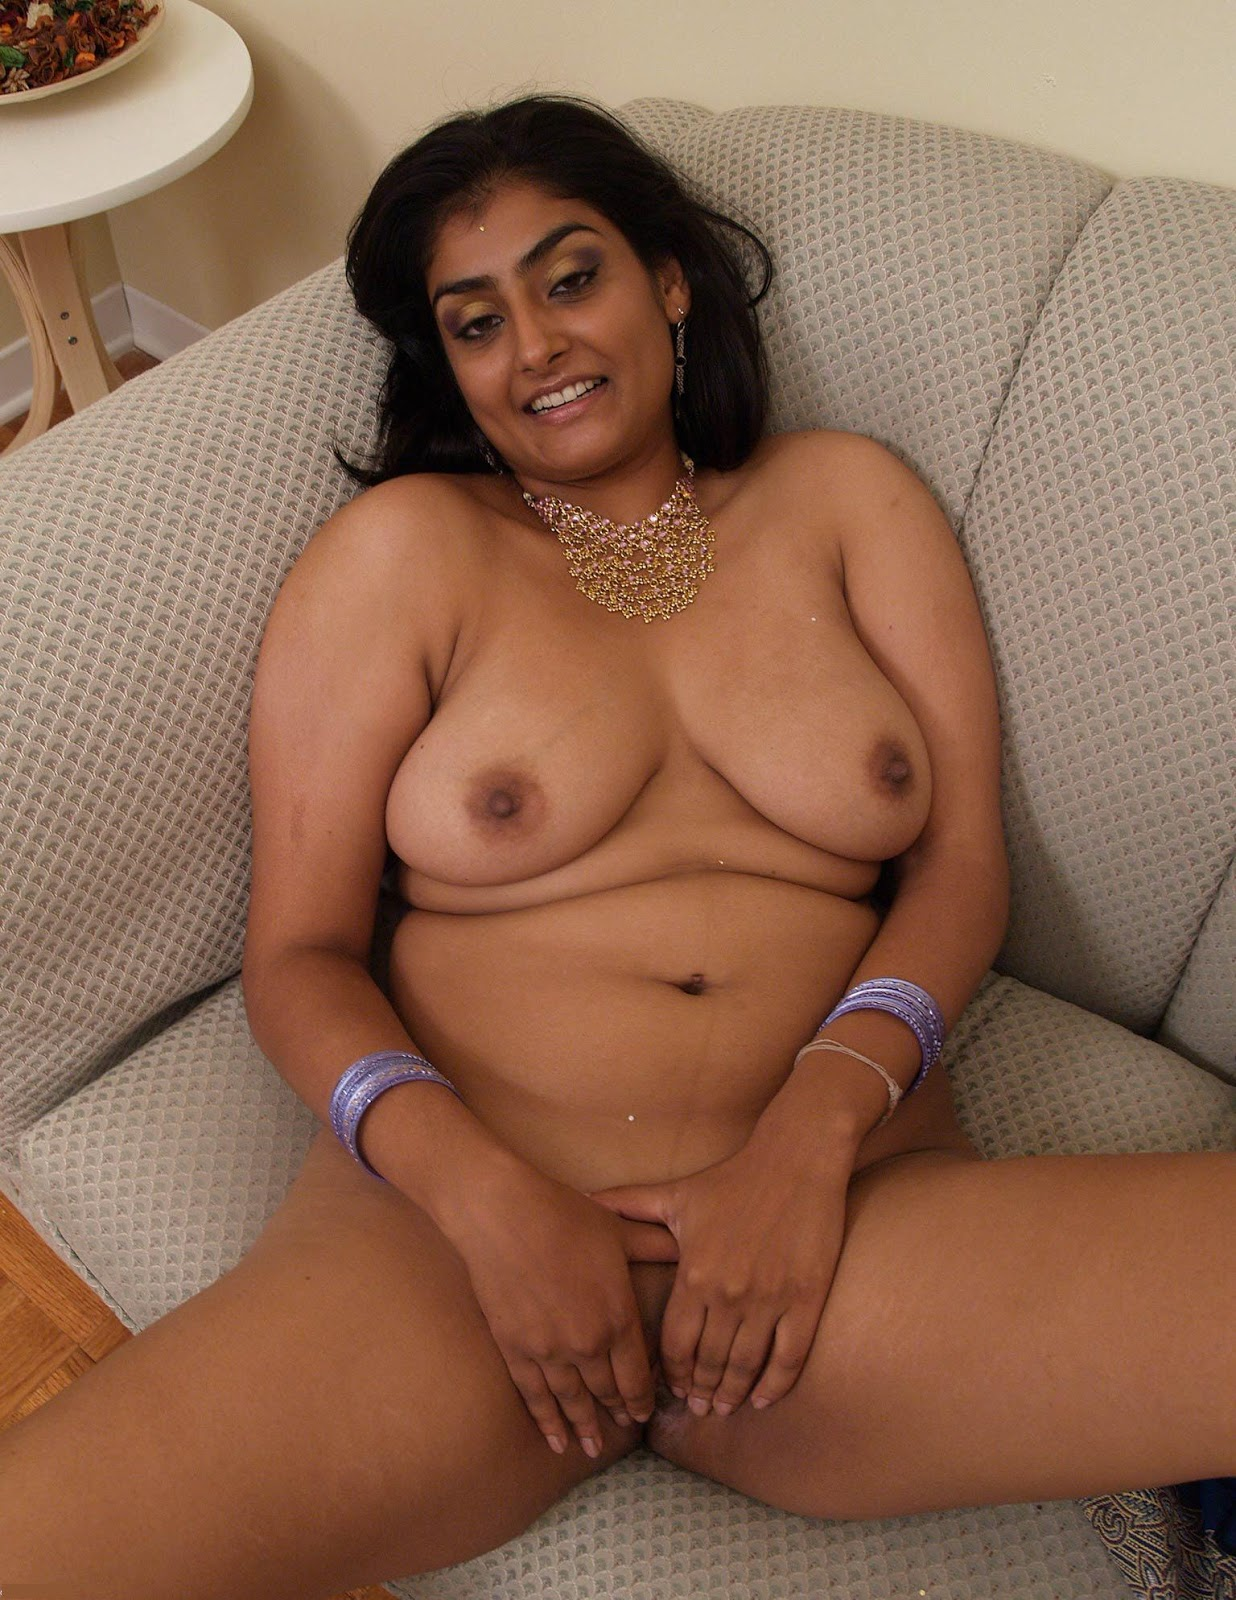 Tamil mami whatsapp video chat with audiopart6 - 3 2